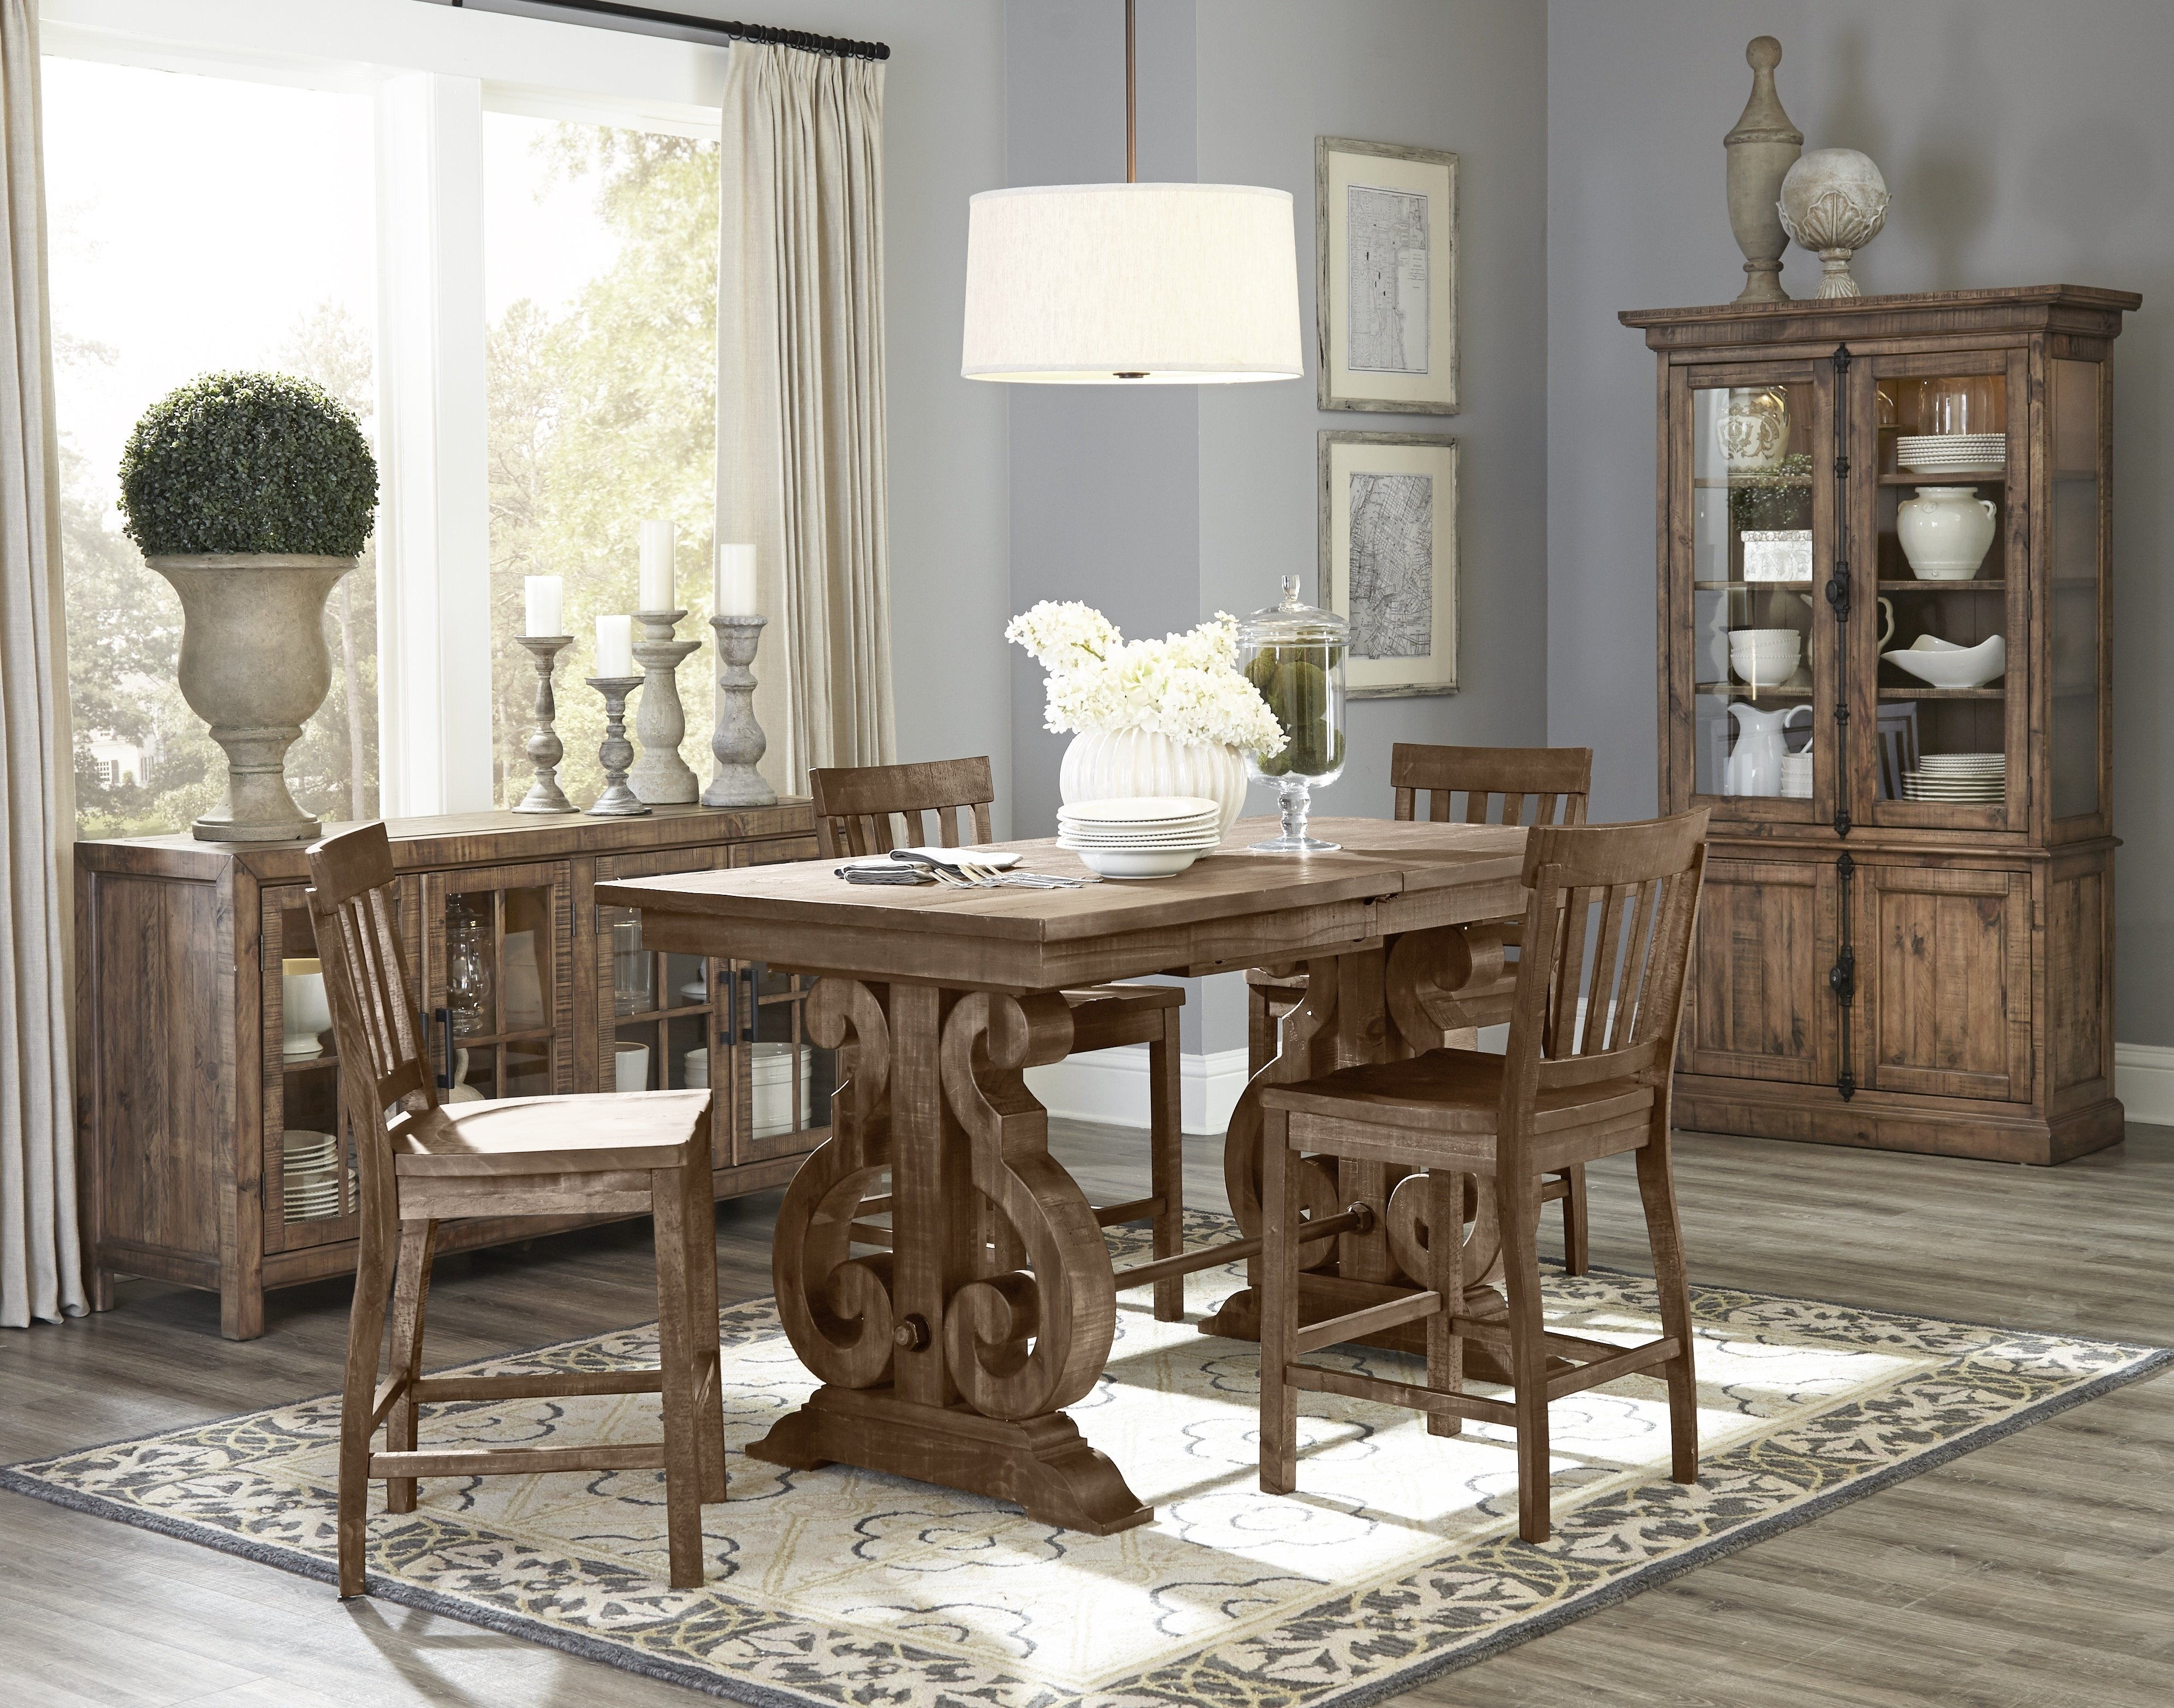 Greyleigh 5 Piece Dining Set | Wayfair For Most Current Cora 5 Piece Dining Sets (Image 15 of 20)